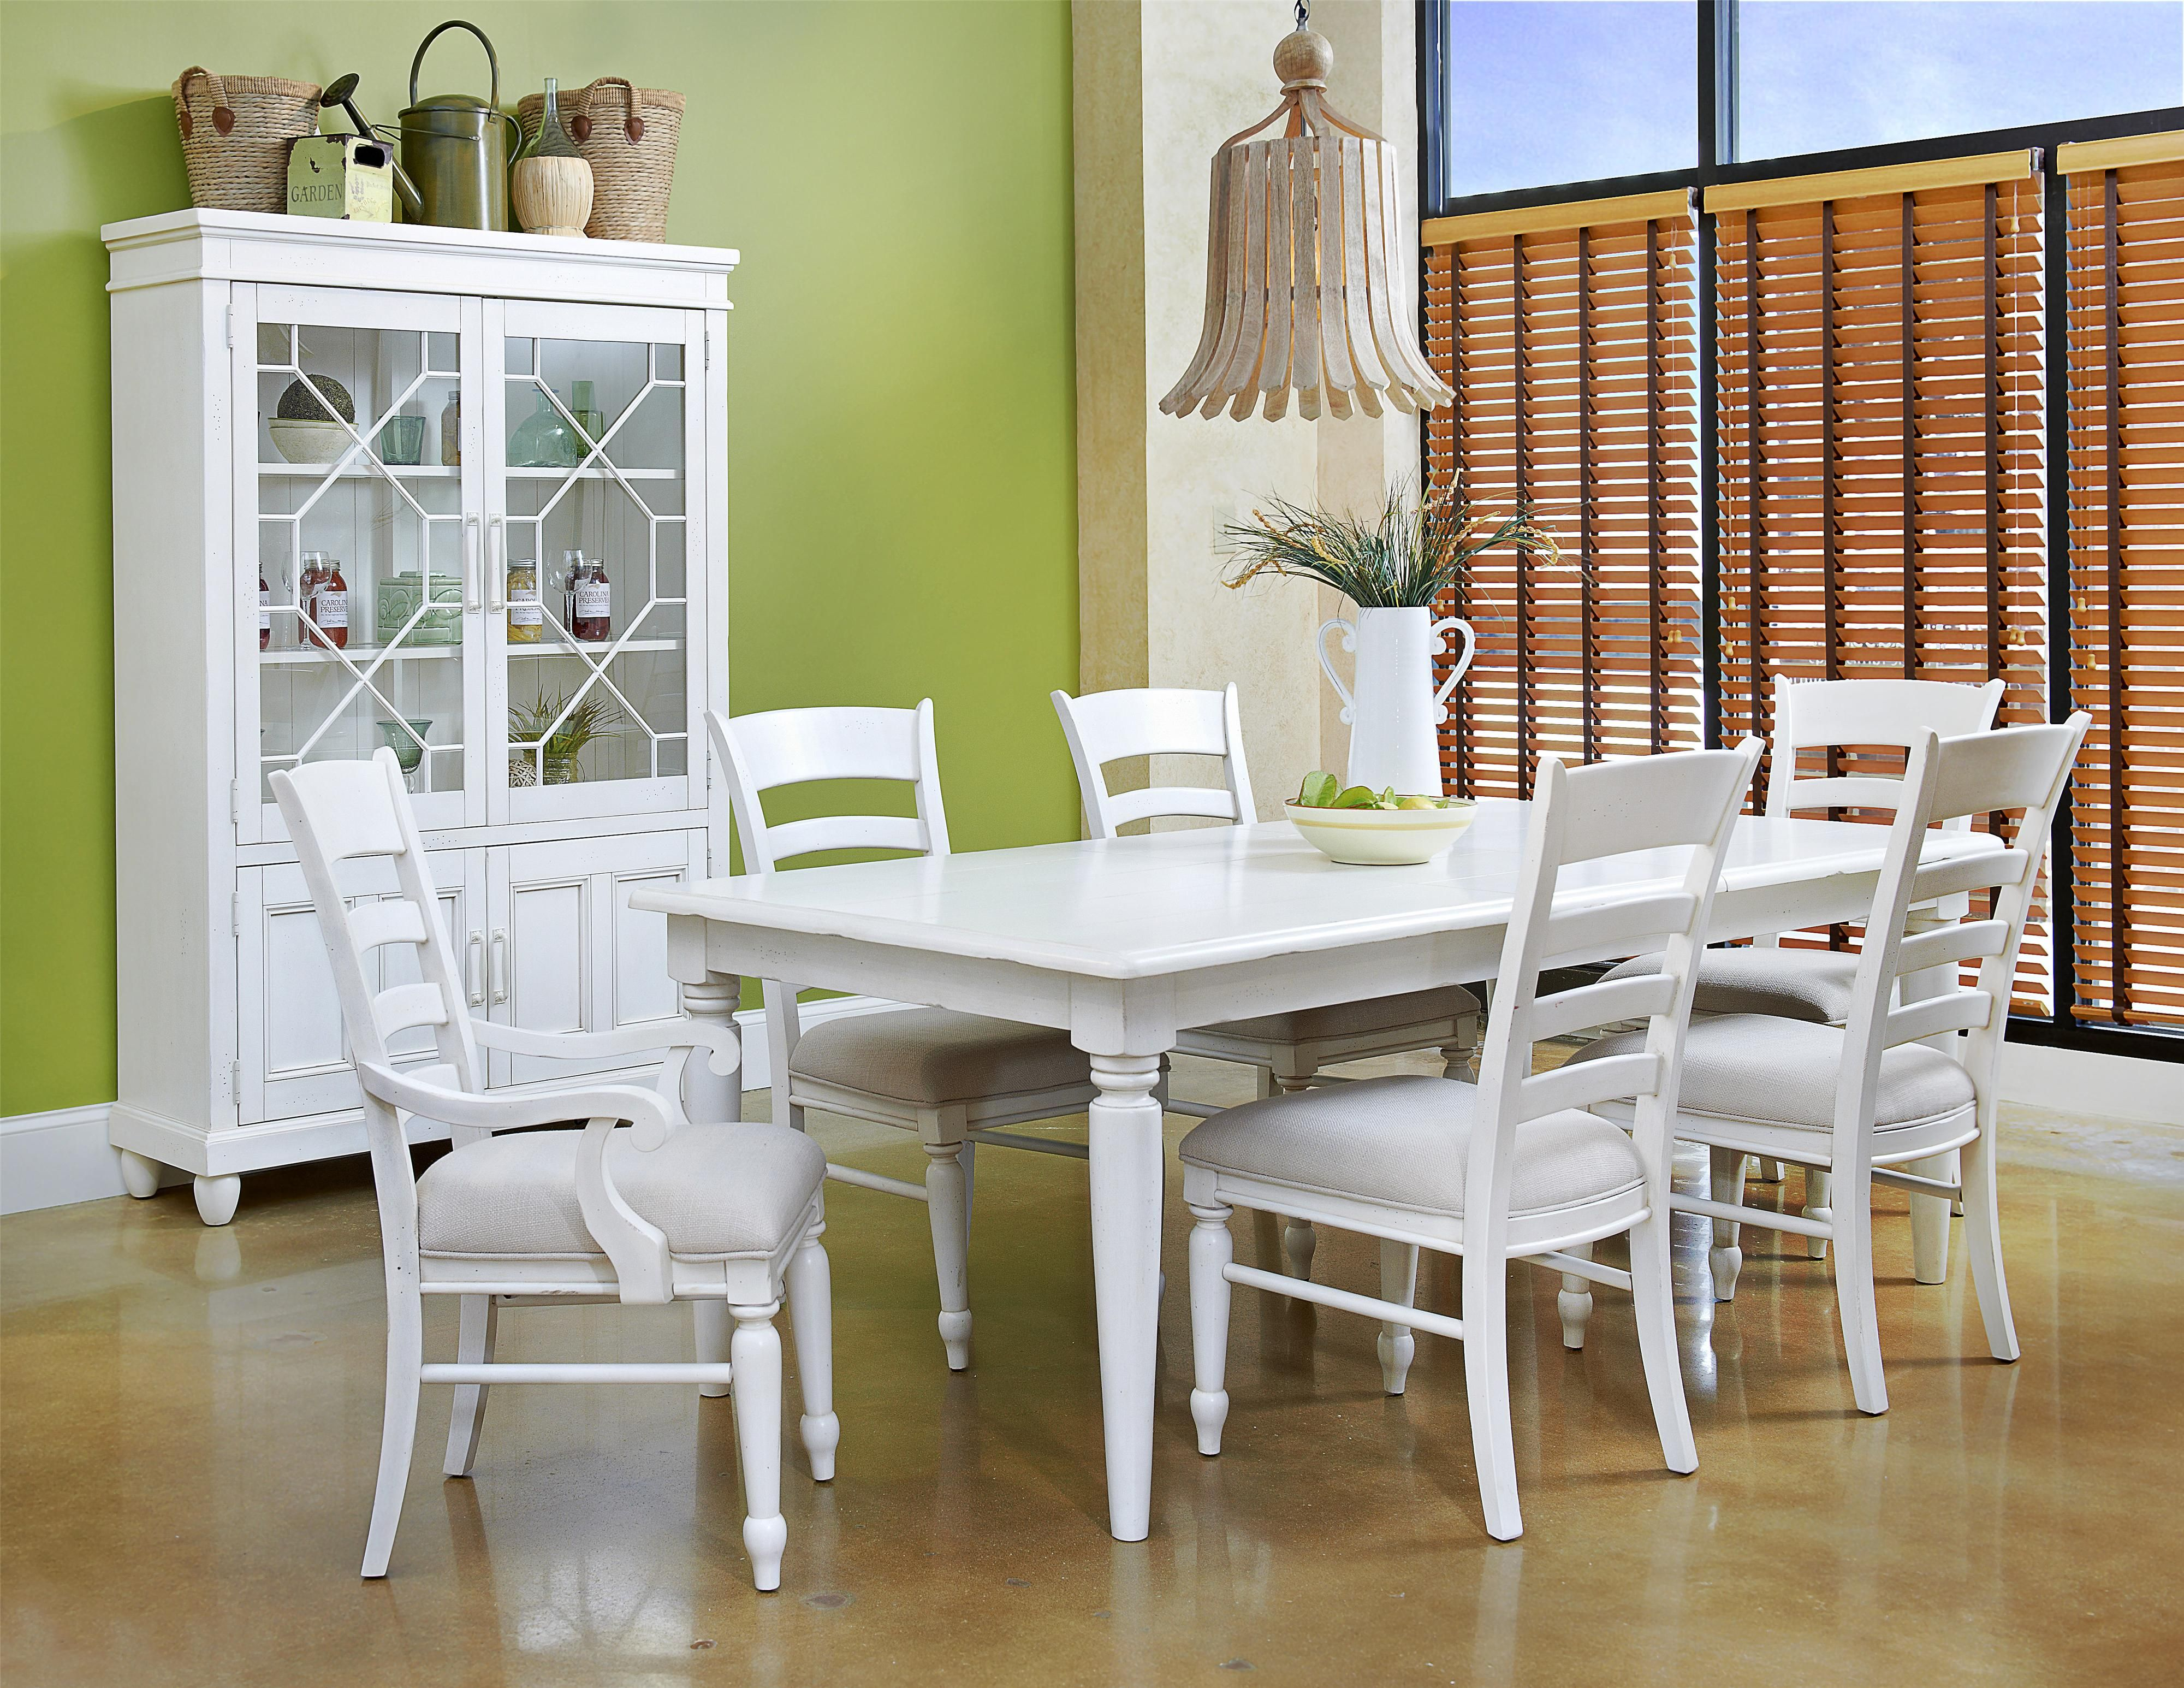 Collections 2fcarolina Preserves By Klaussner 2fsea Breeze 424 Drl B5 Extension Dining Table White Dining Room Sets Hillsdale Furniture